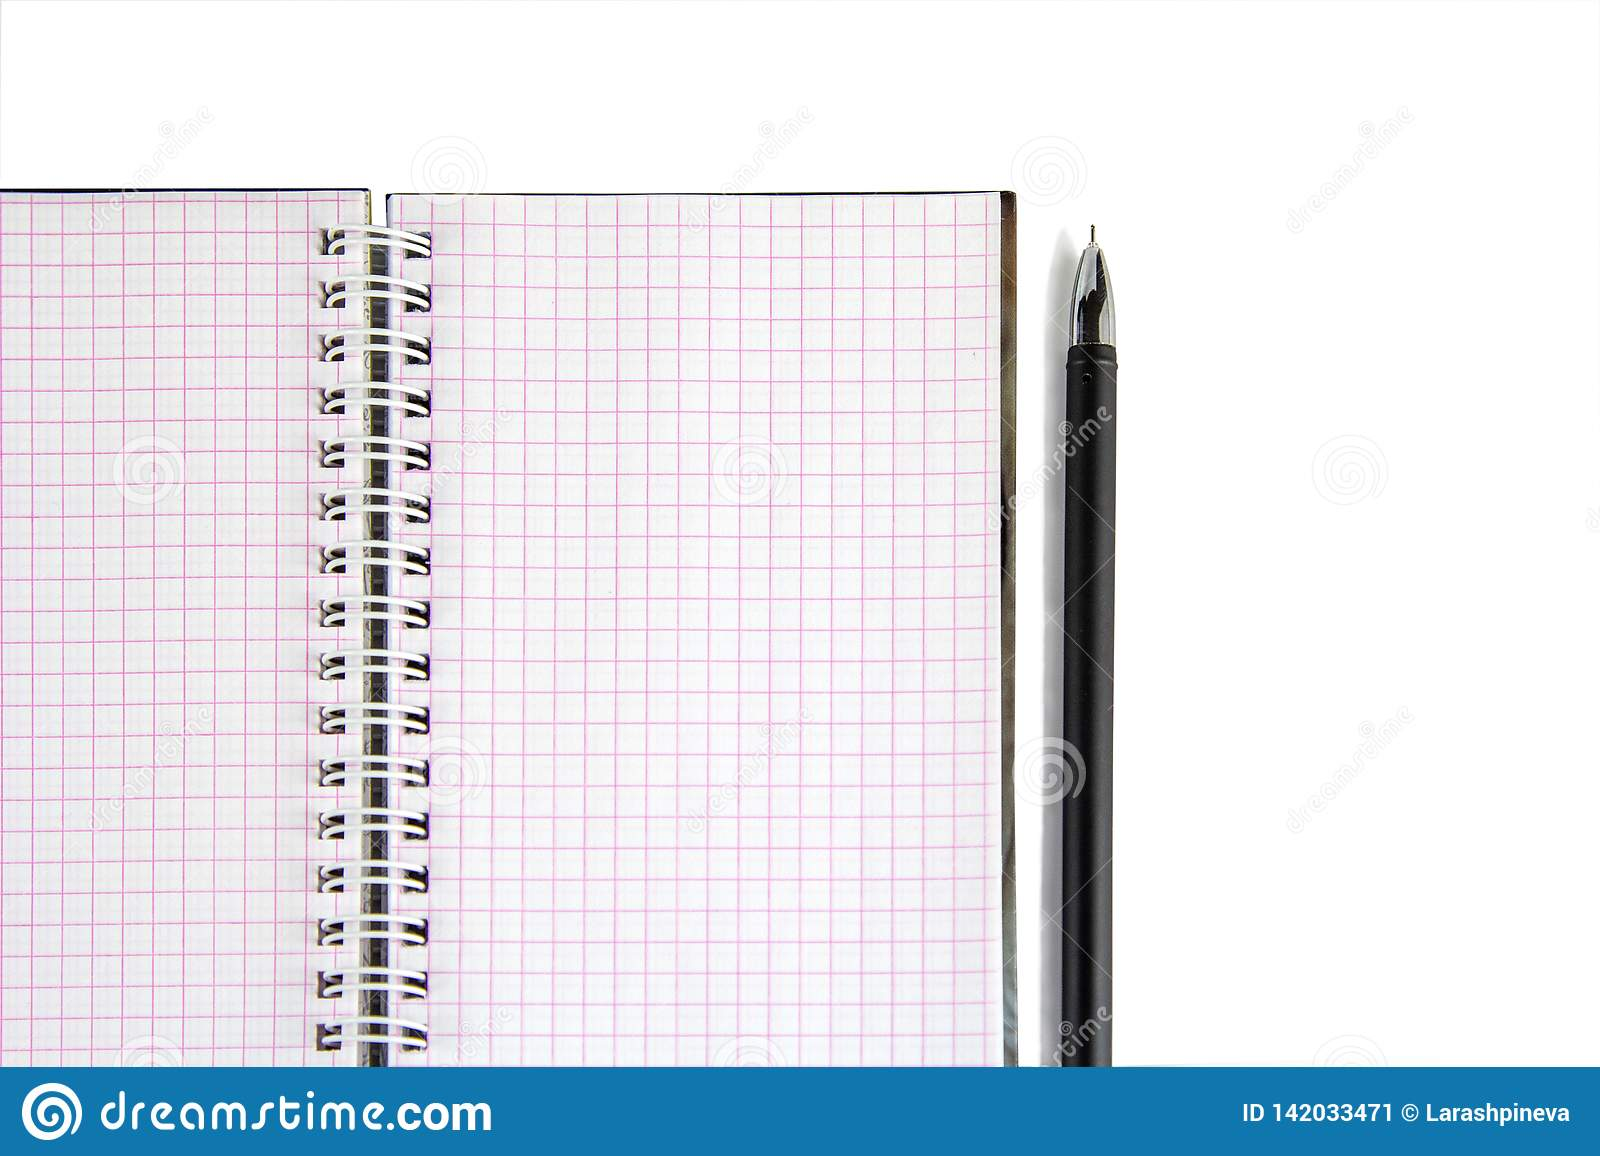 Notebook with pen- great design for any purposes. Creative business. Lifestyle, business finance, education technology concept.